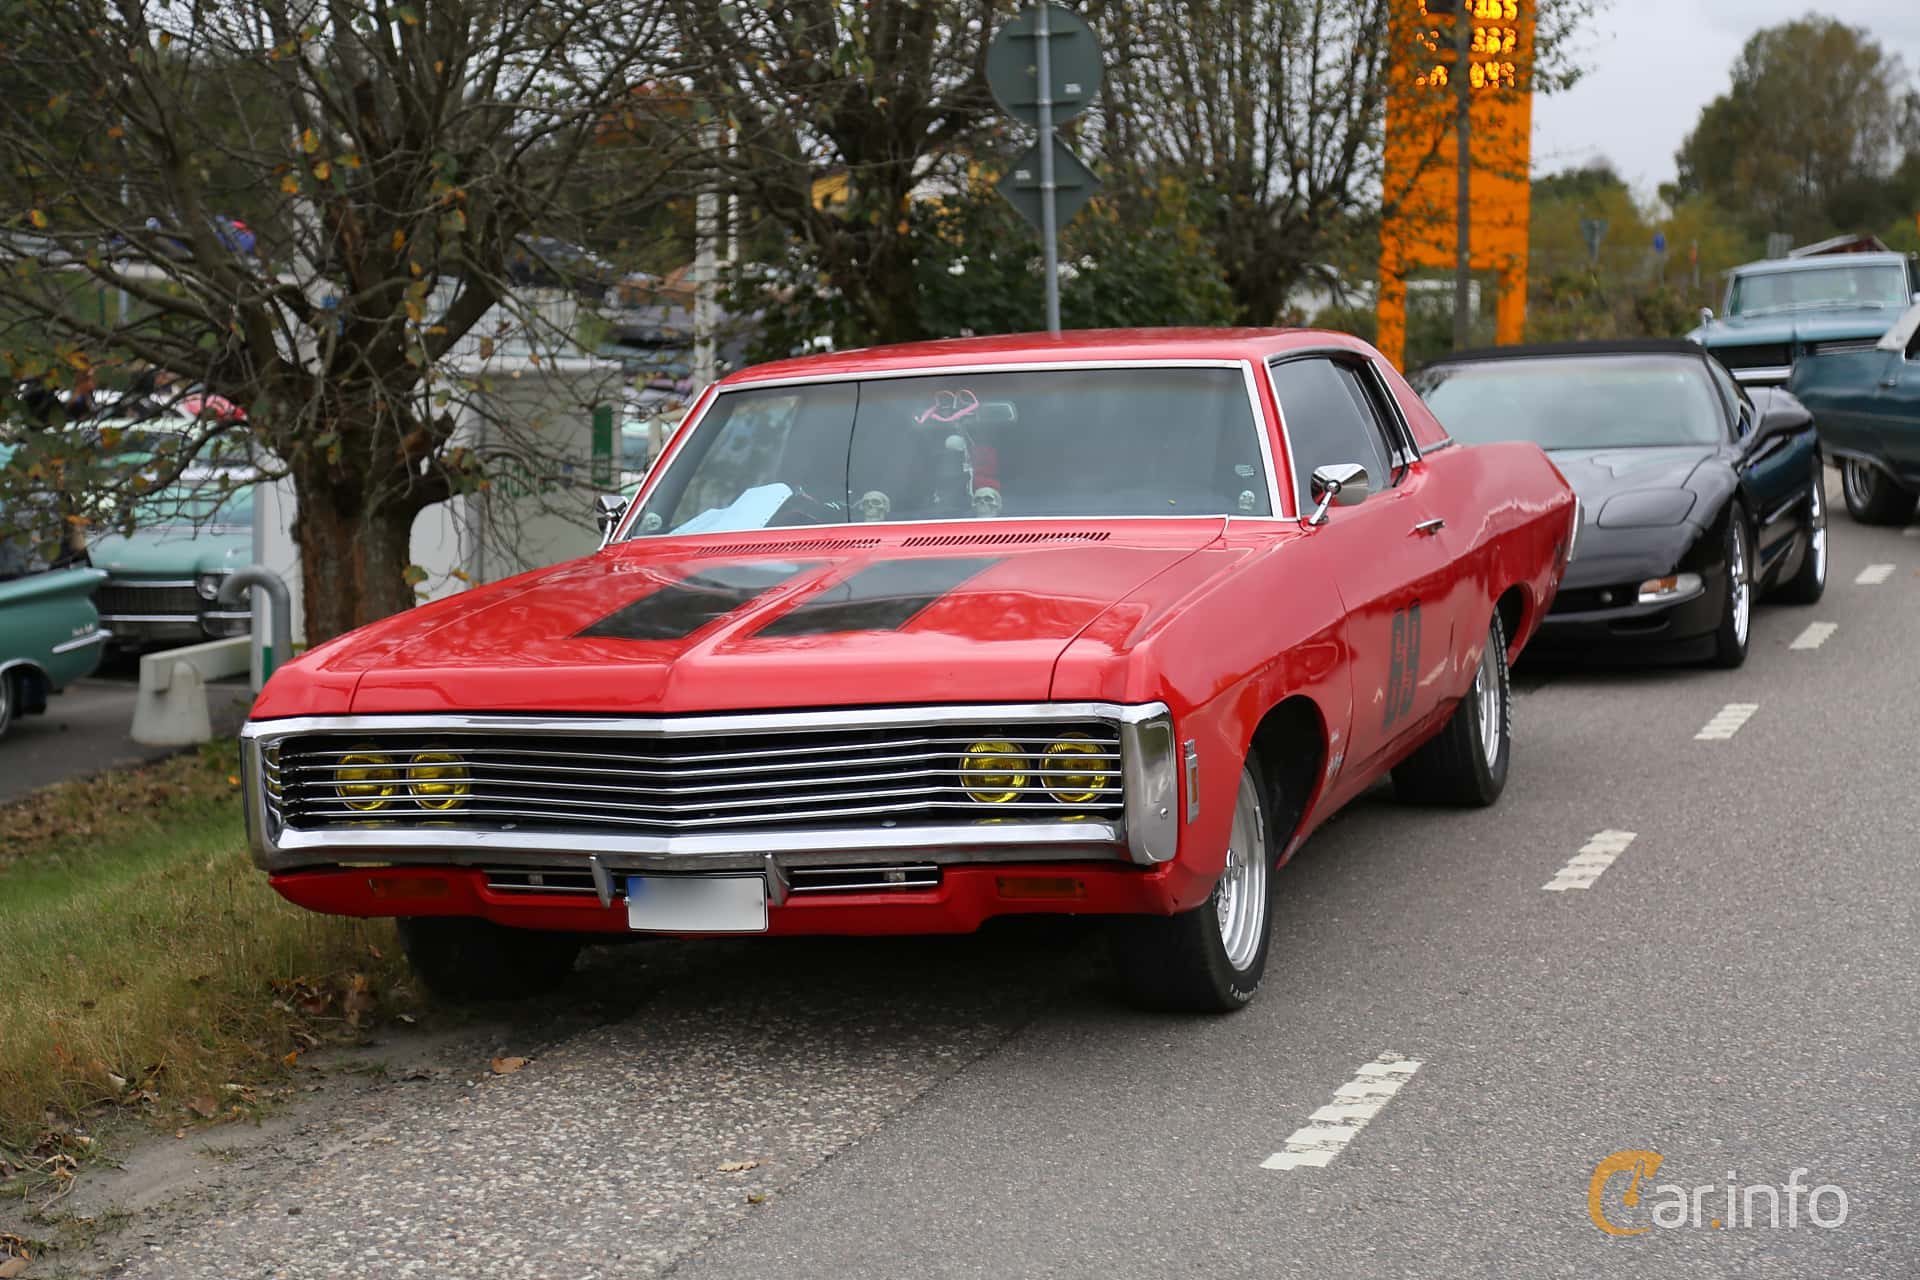 Chevrolet Impala Custom Coupé 5 4 V8 Manual 238hp 1969